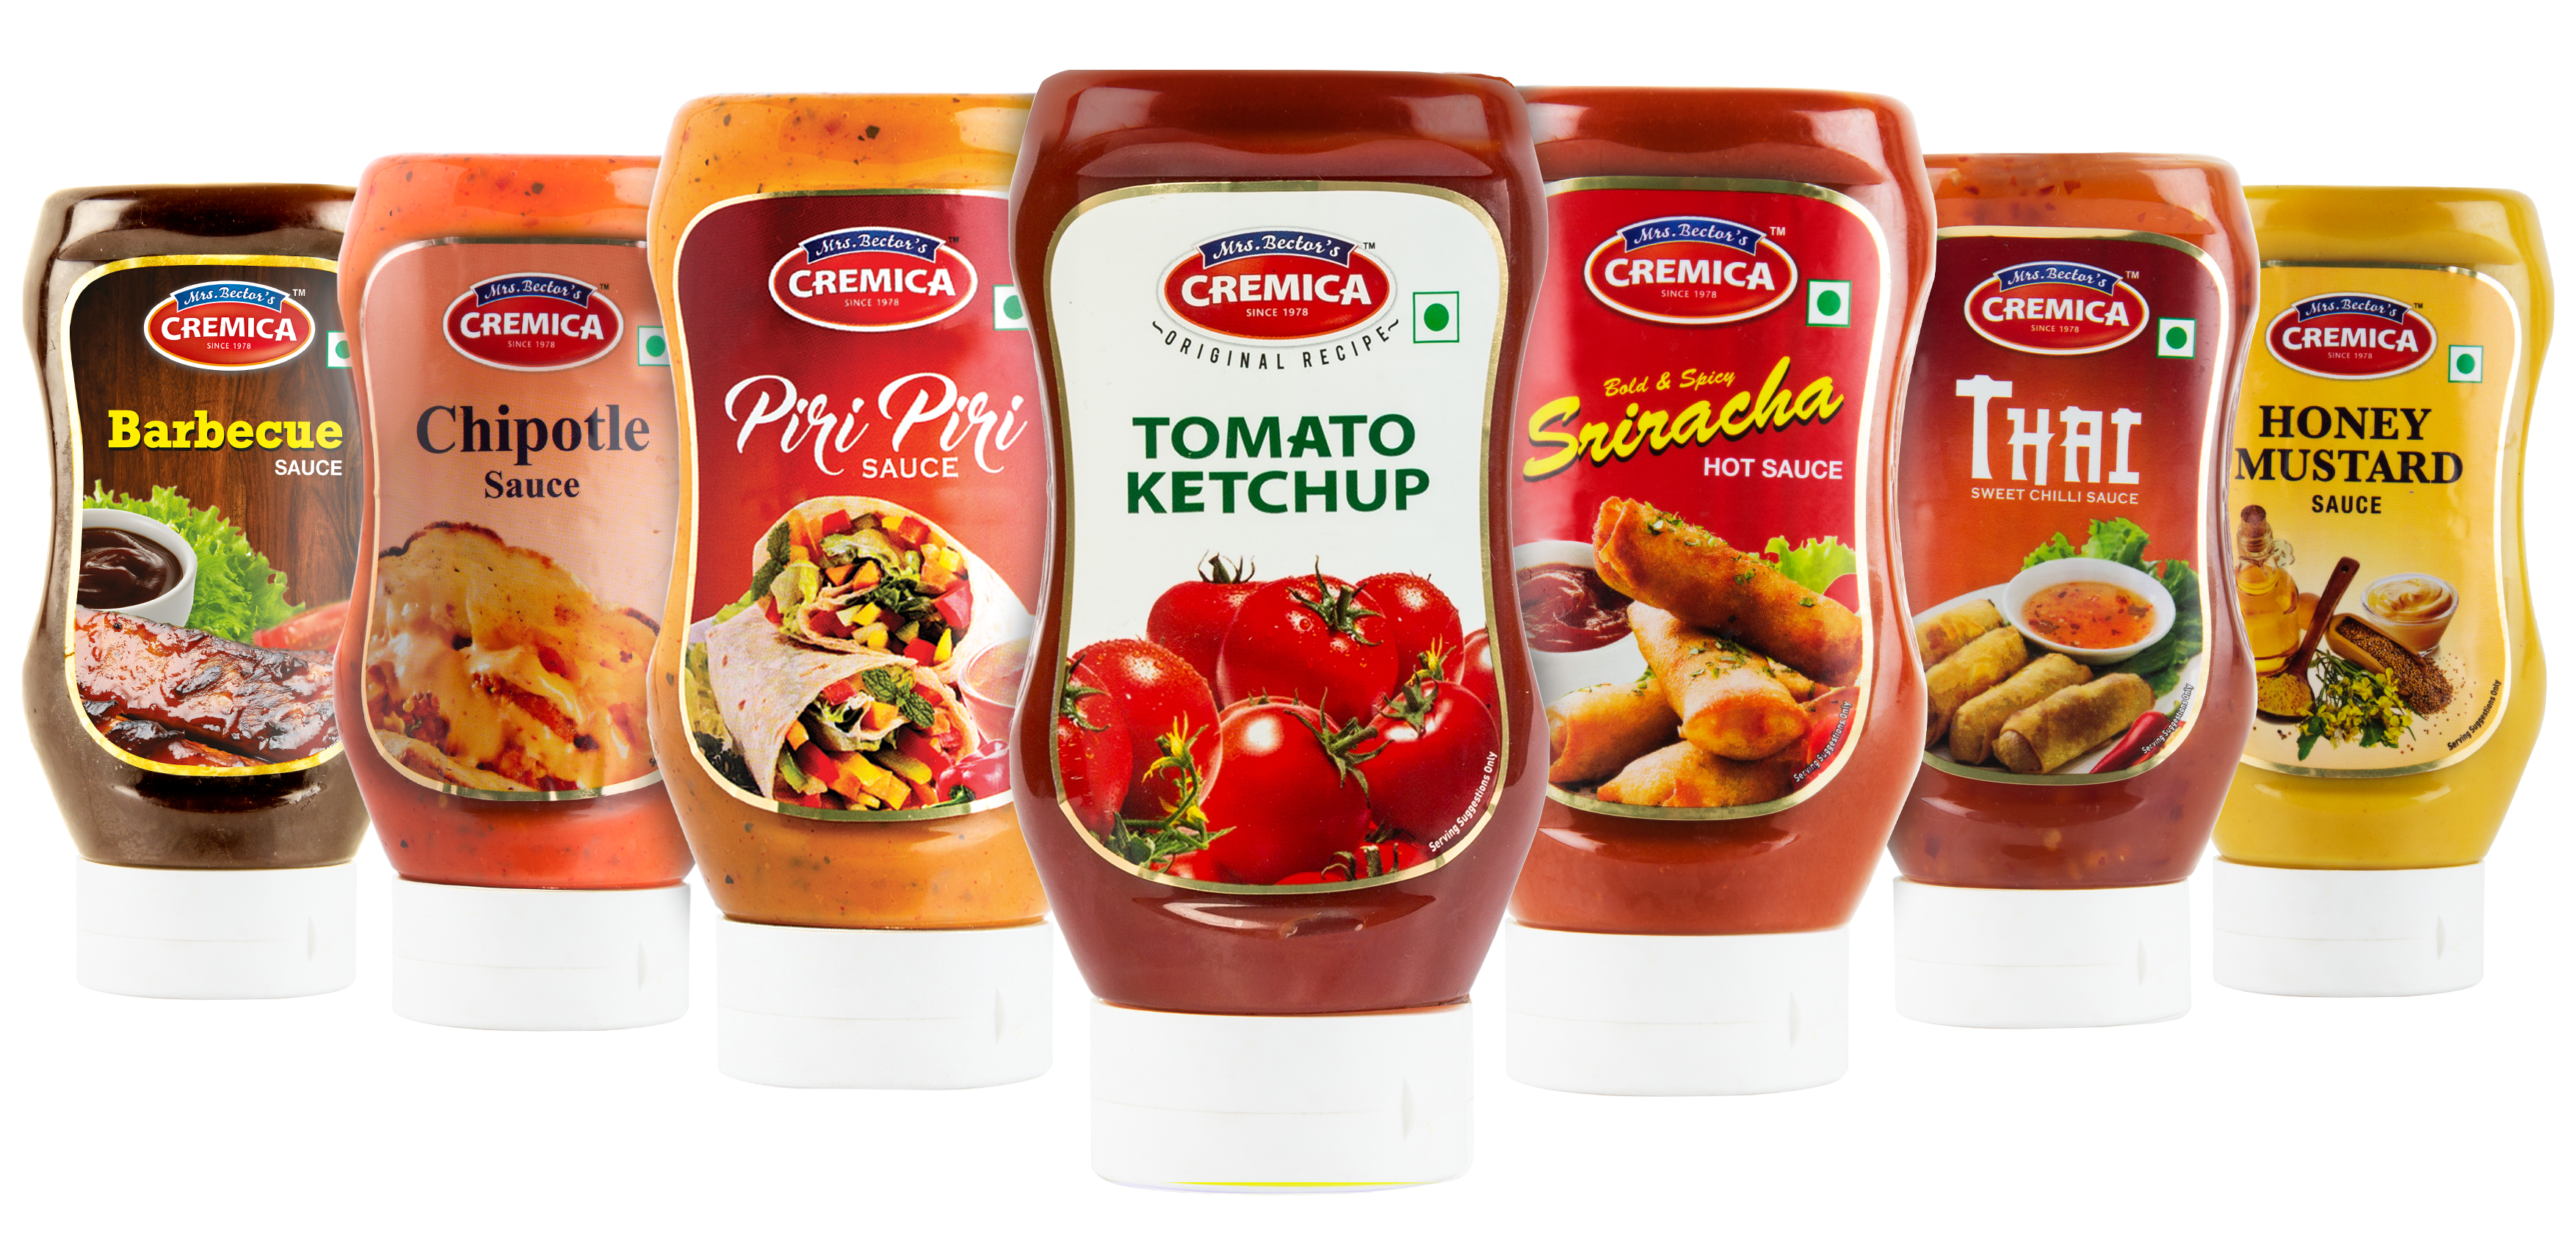 Cremica - Mayonnaise, Salad Dressings, Sauces, Ketchups and